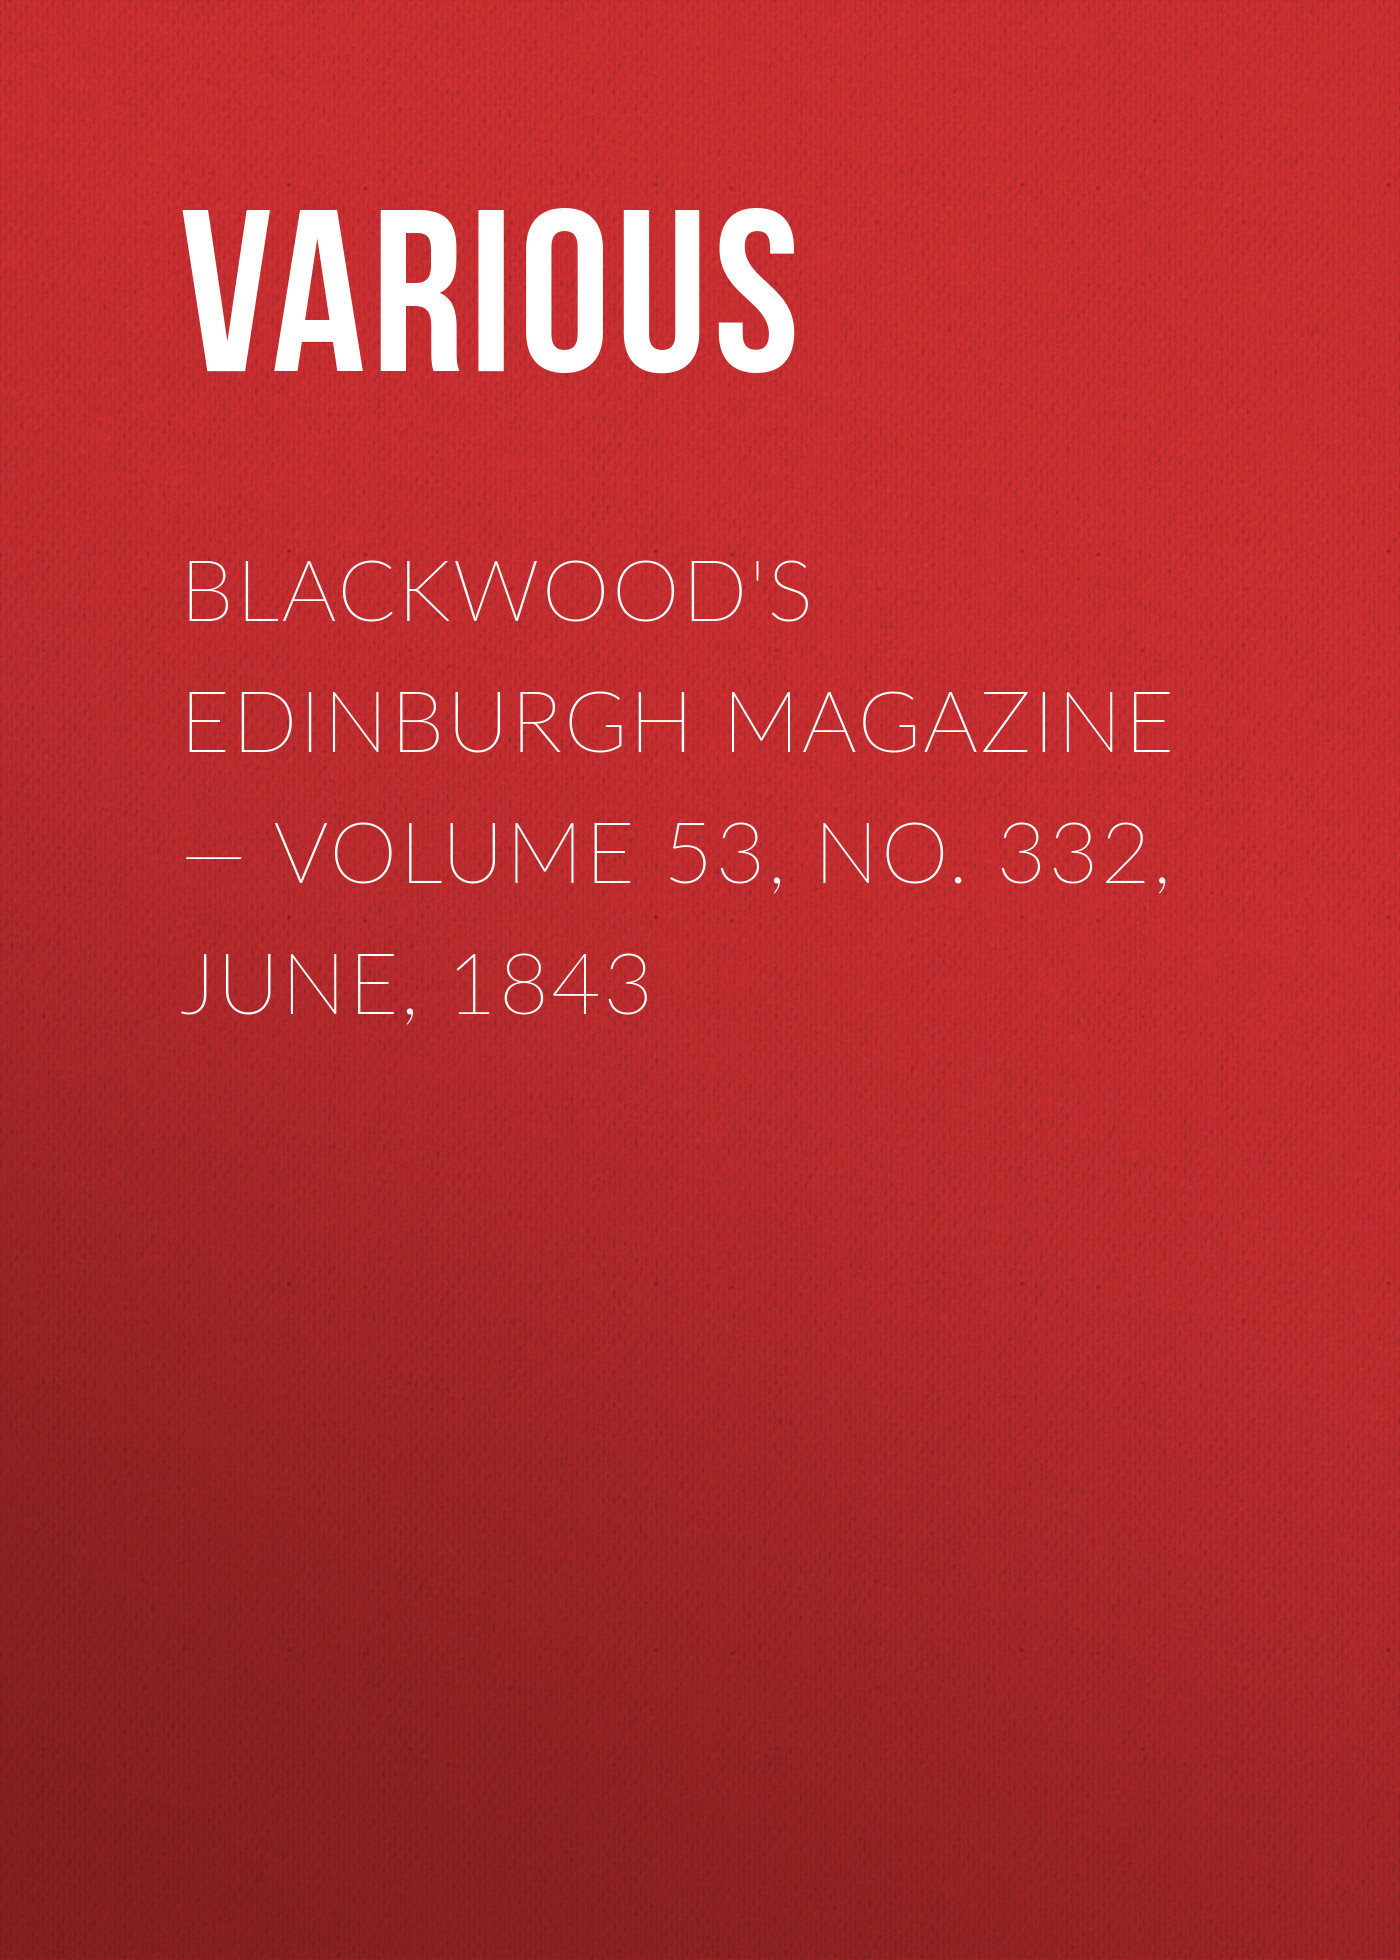 лучшая цена Various Blackwoods Edinburgh Magazine – Volume 53, No. 332, June, 1843